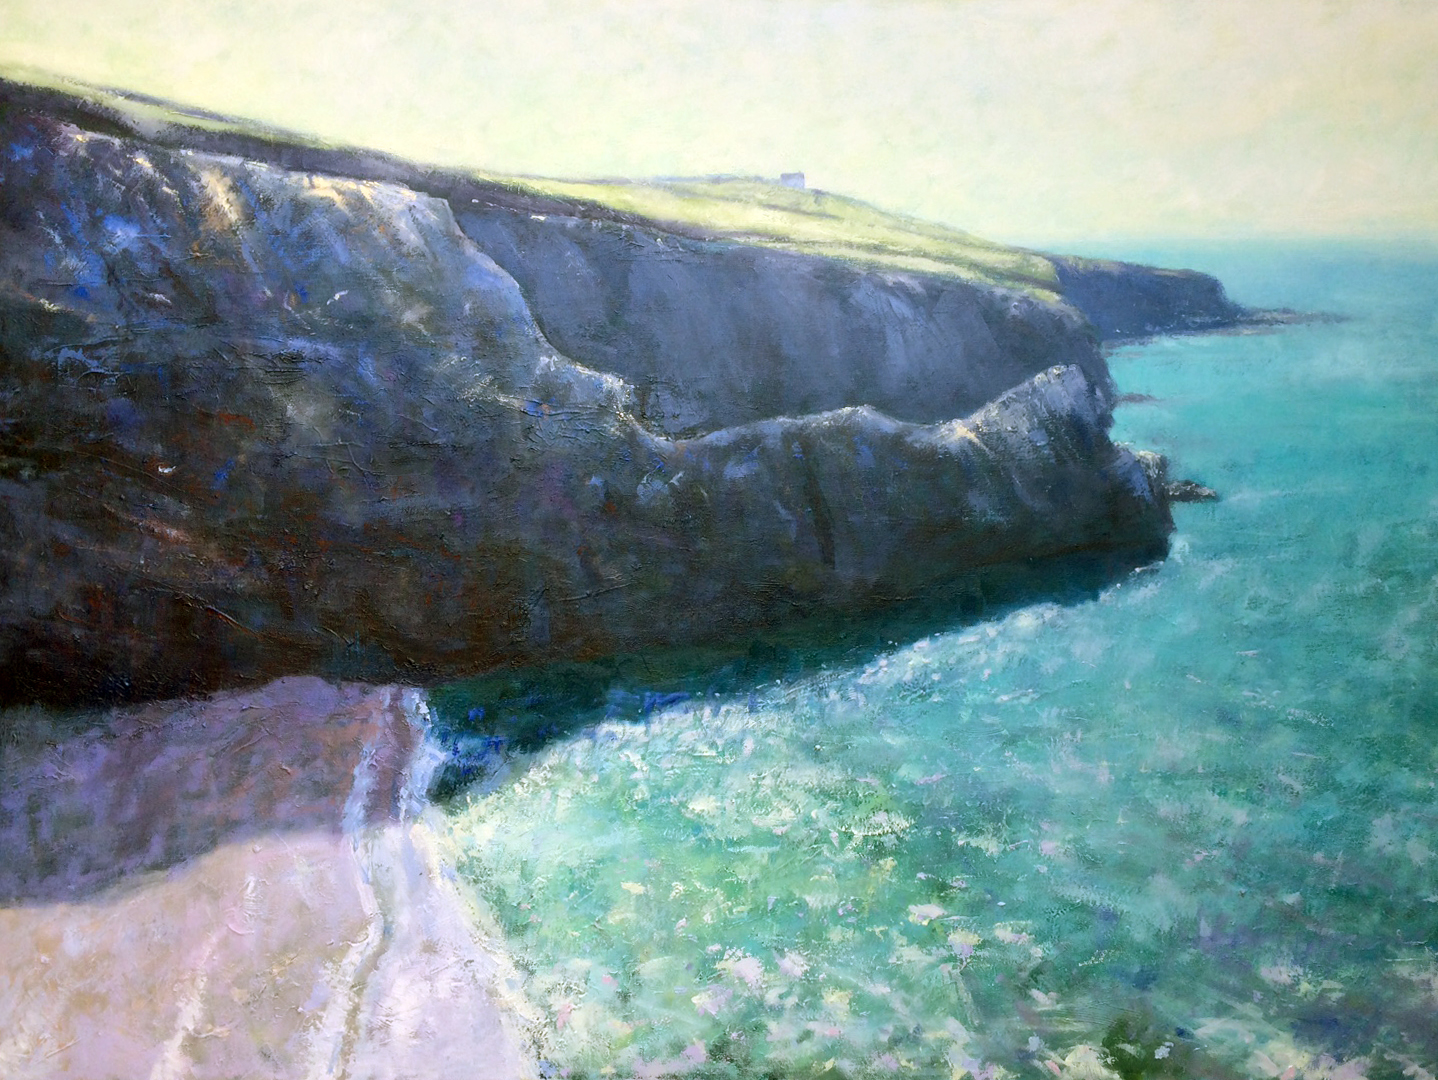 Exhibition in Porthleven gallery - Painting of the cliffs at Beacon Crag